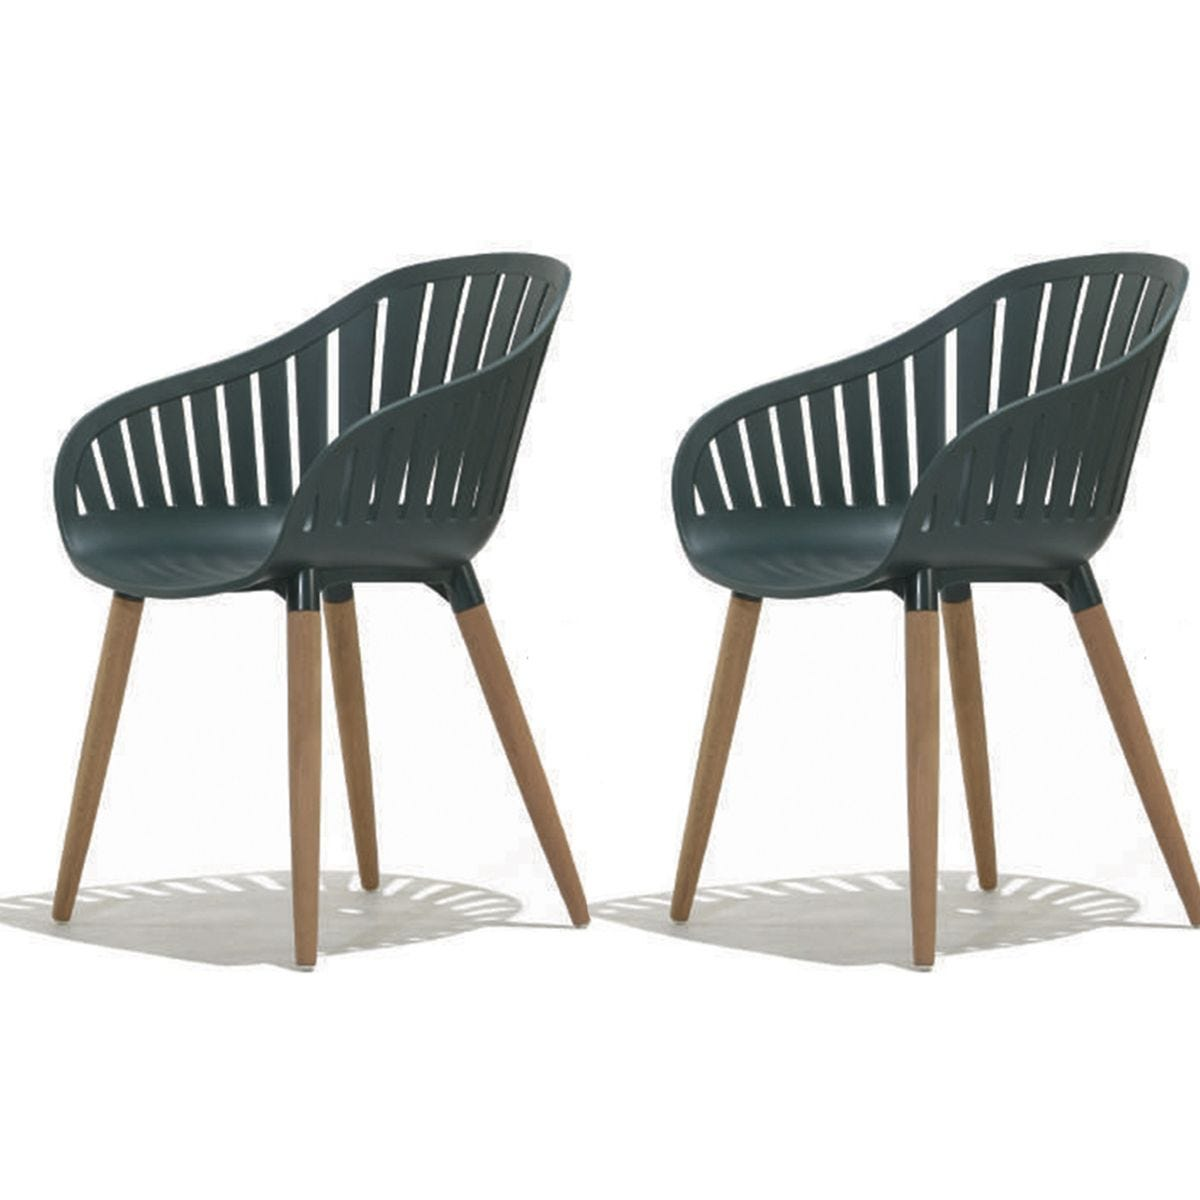 DuraOcean Recycled Plastic Chairs - 2 Pack